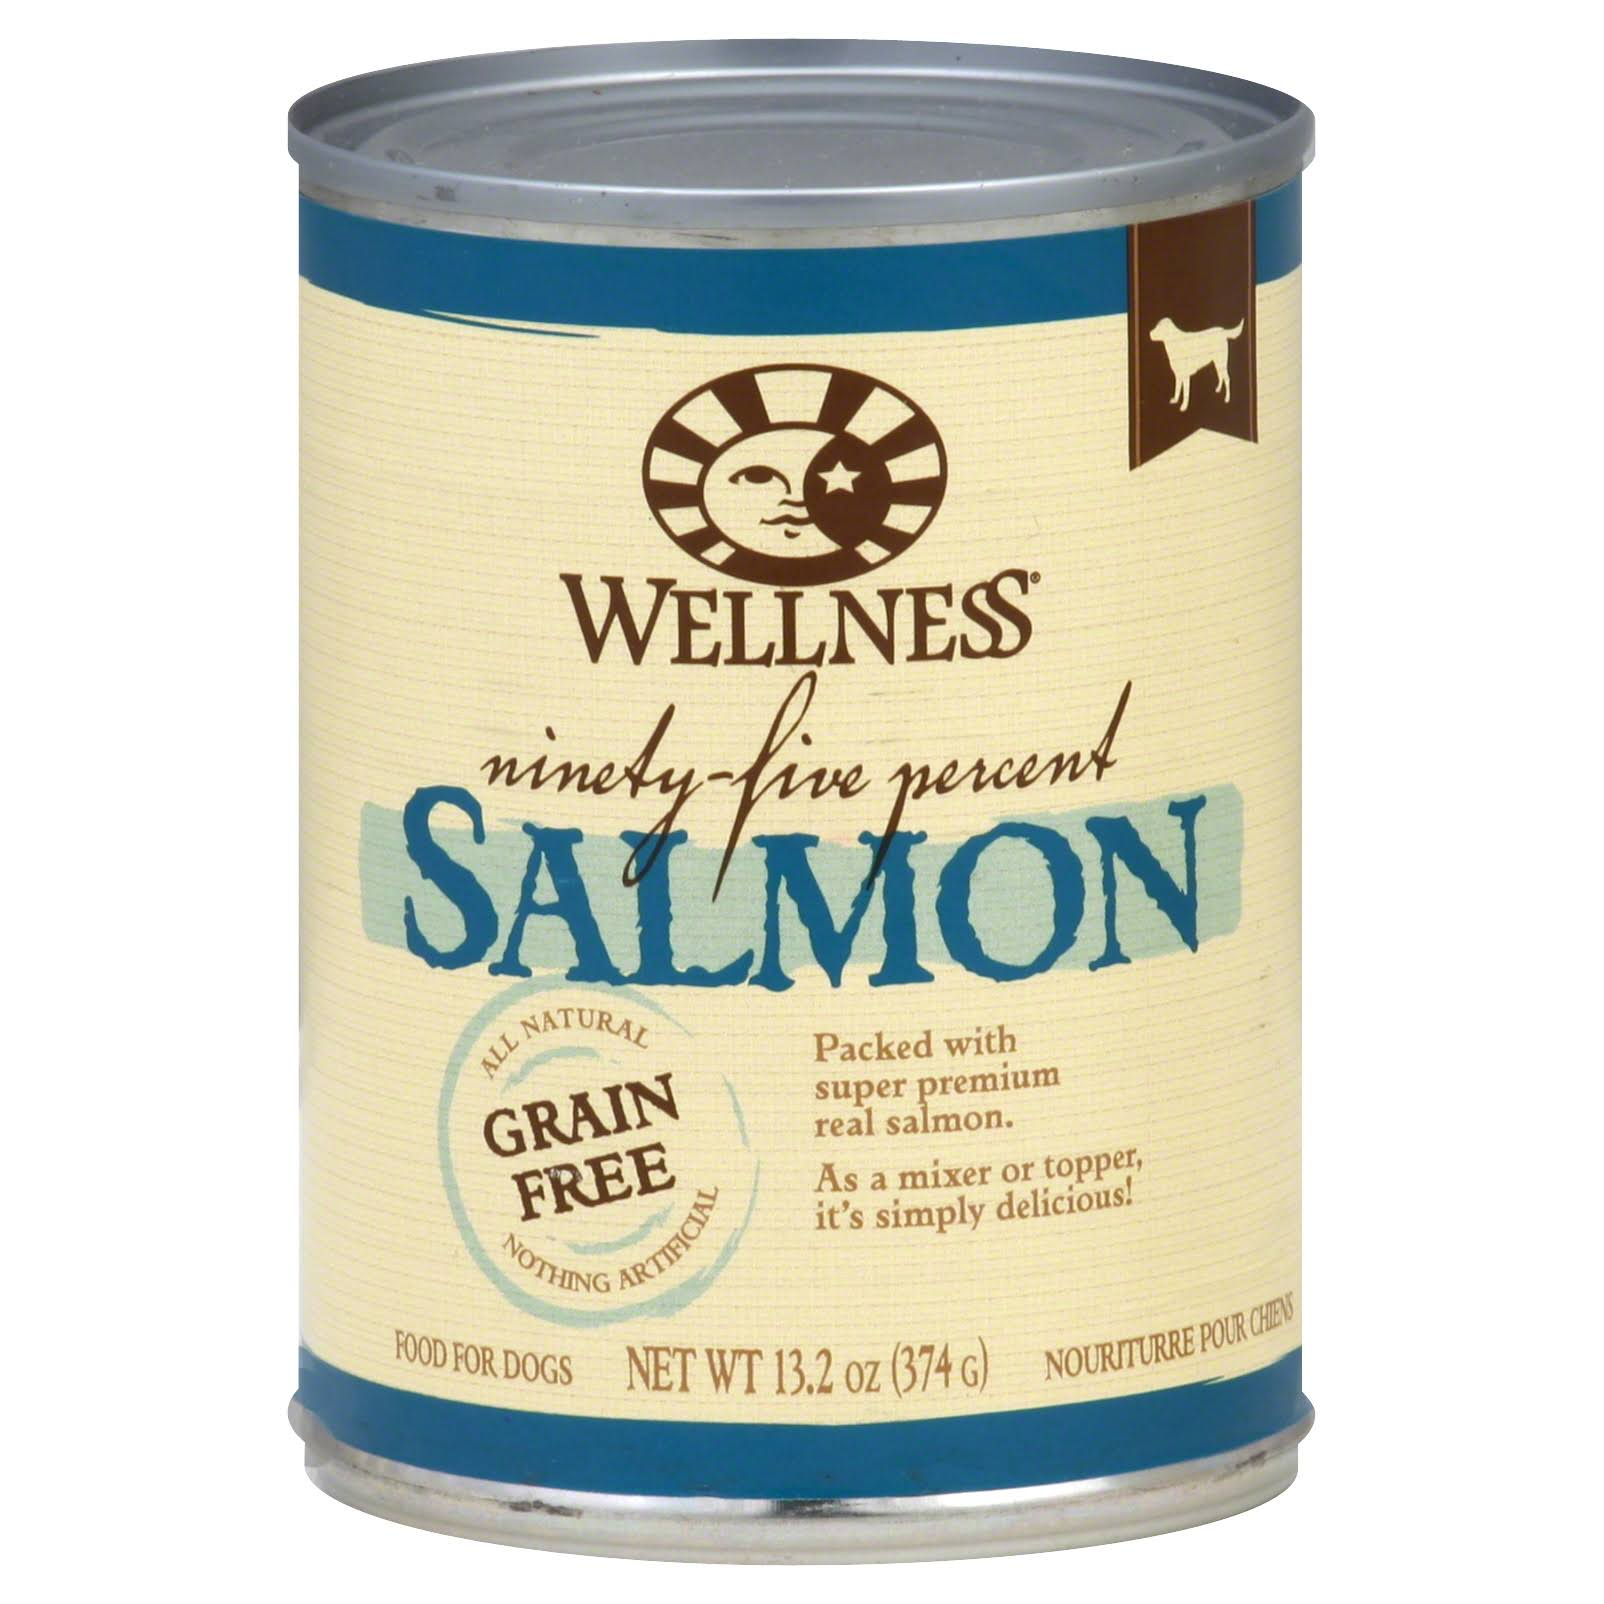 Wellness Natural Grain Free Wet Canned Dog Food - Salmon